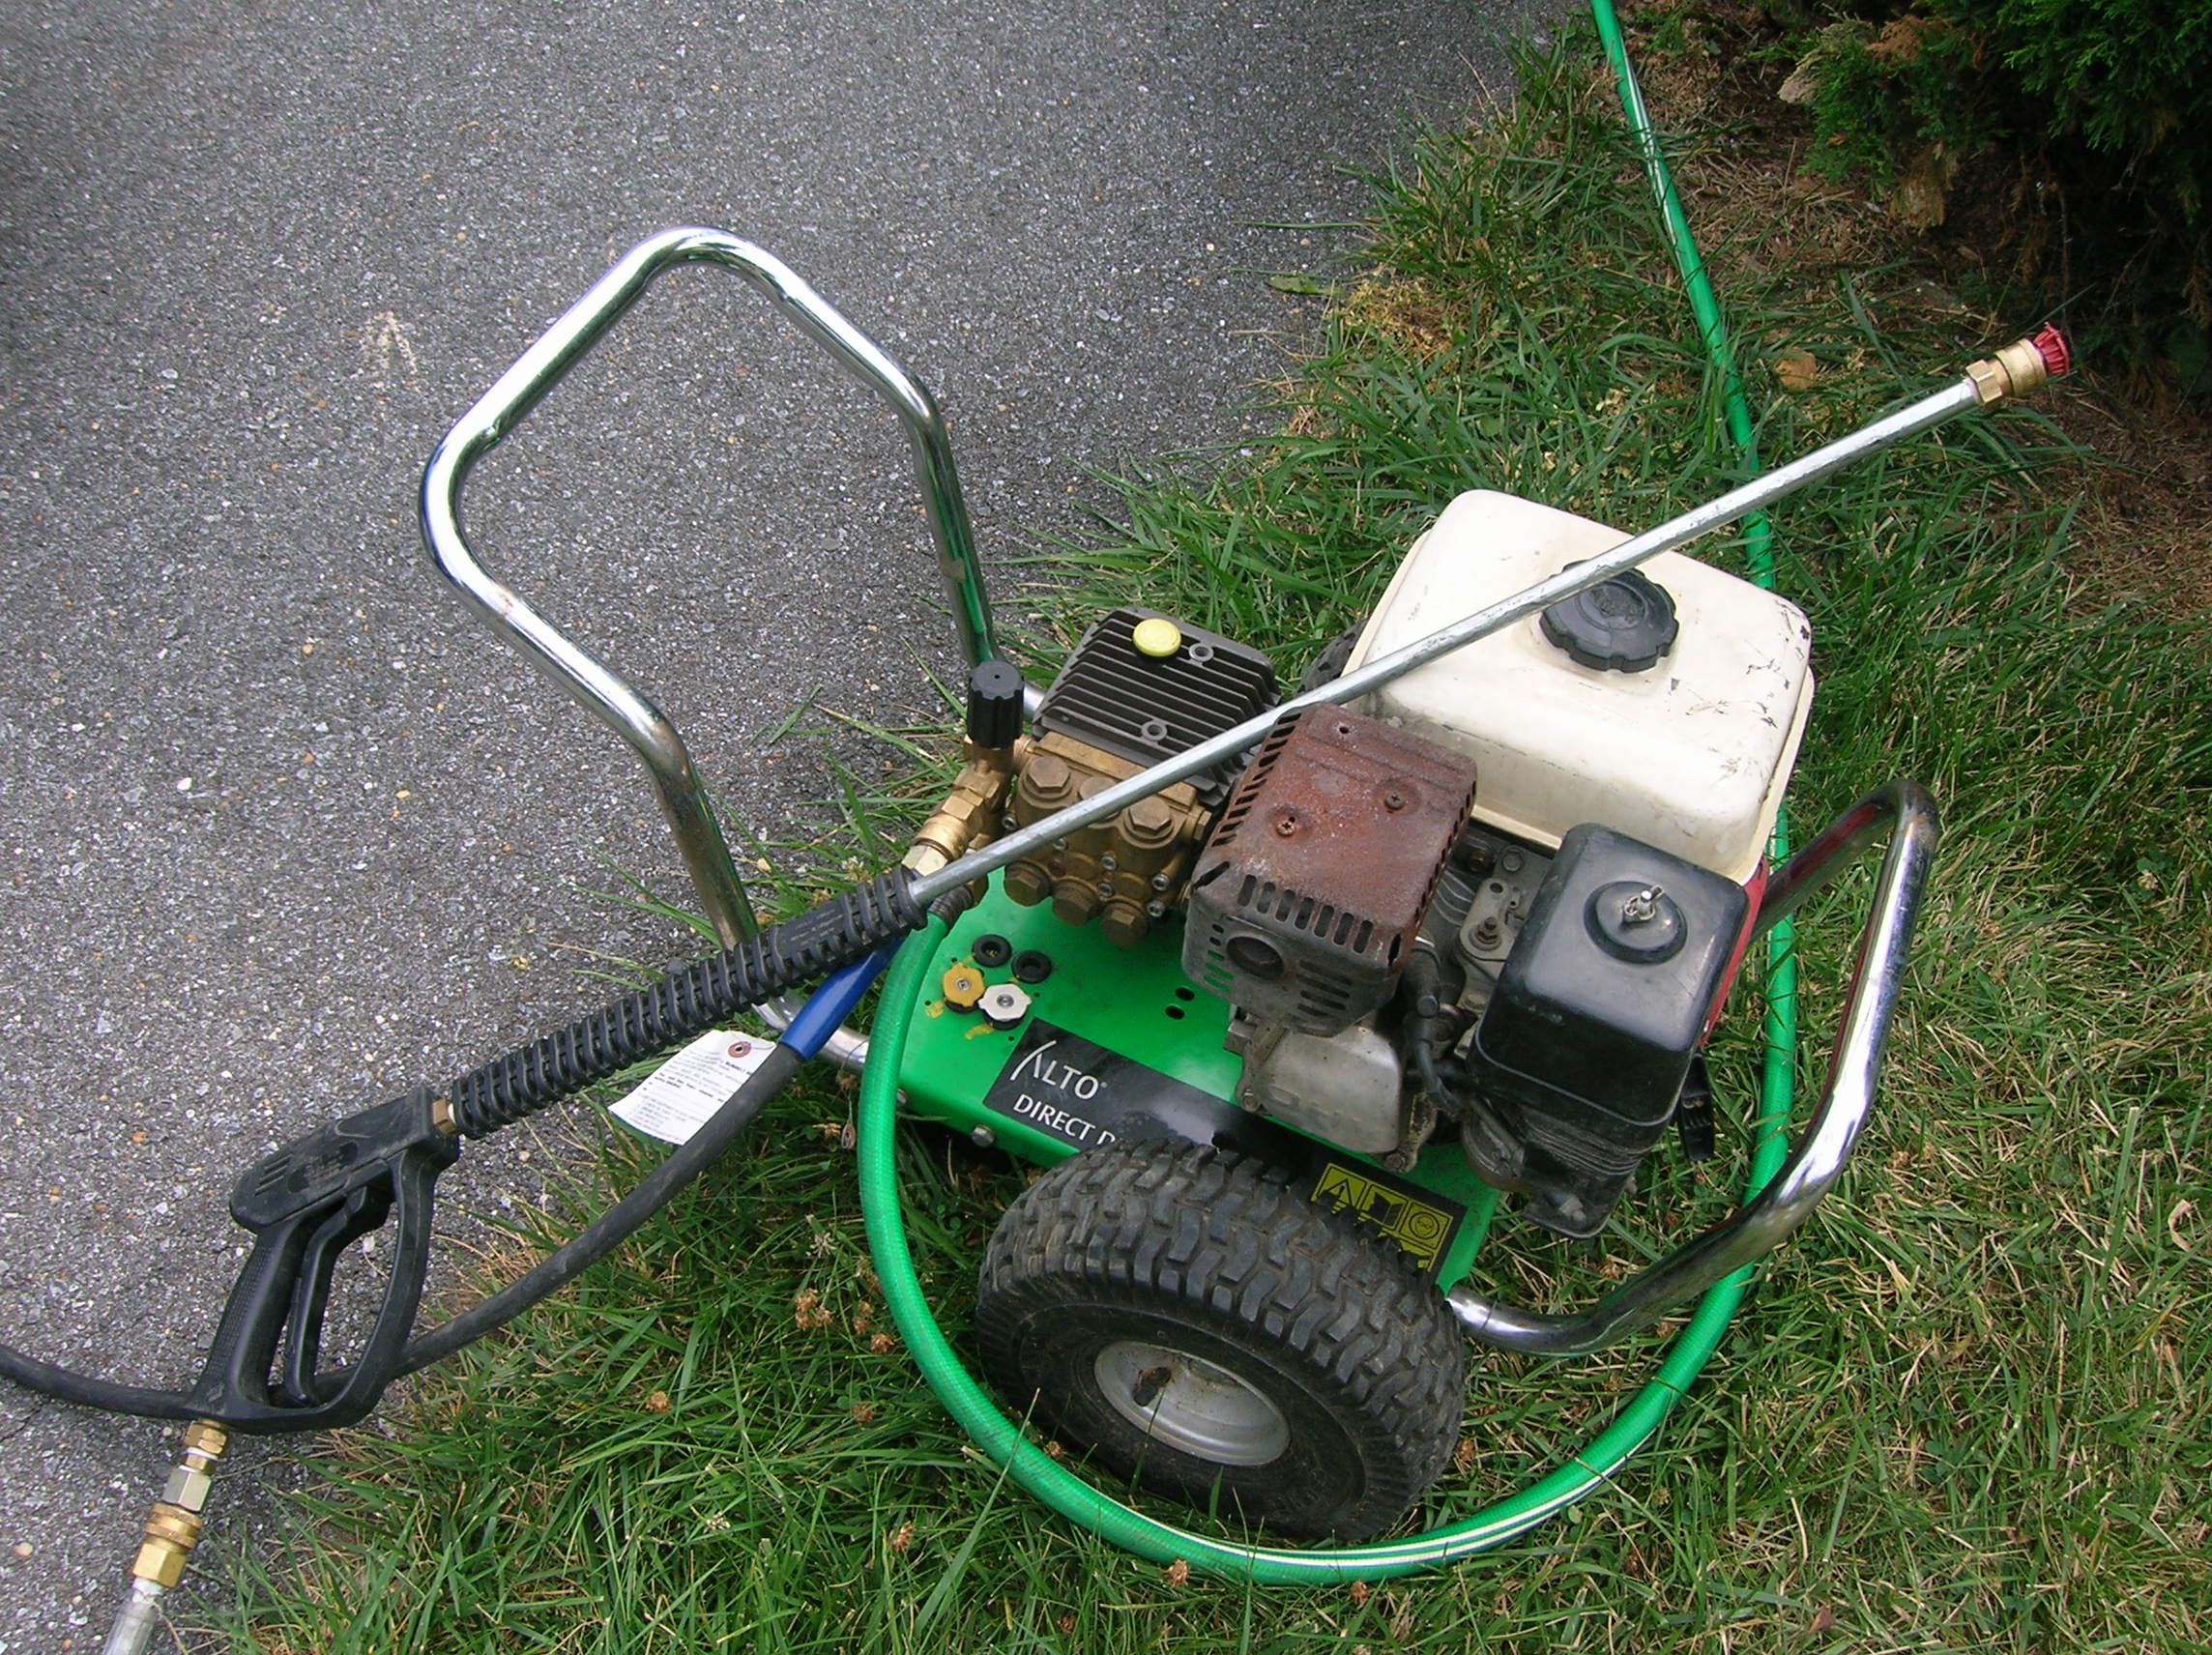 Whirl A Way 18 Rotary Flat Surface Cleaner Whirlaway 243 P in addition Adam S Foam Cannon Car Washer in addition Disc Brush V Cylinder Brush What Works Best moreover  moreover Clean Vinyl Siding On House Without A Power Washer. on pressure washing brushes